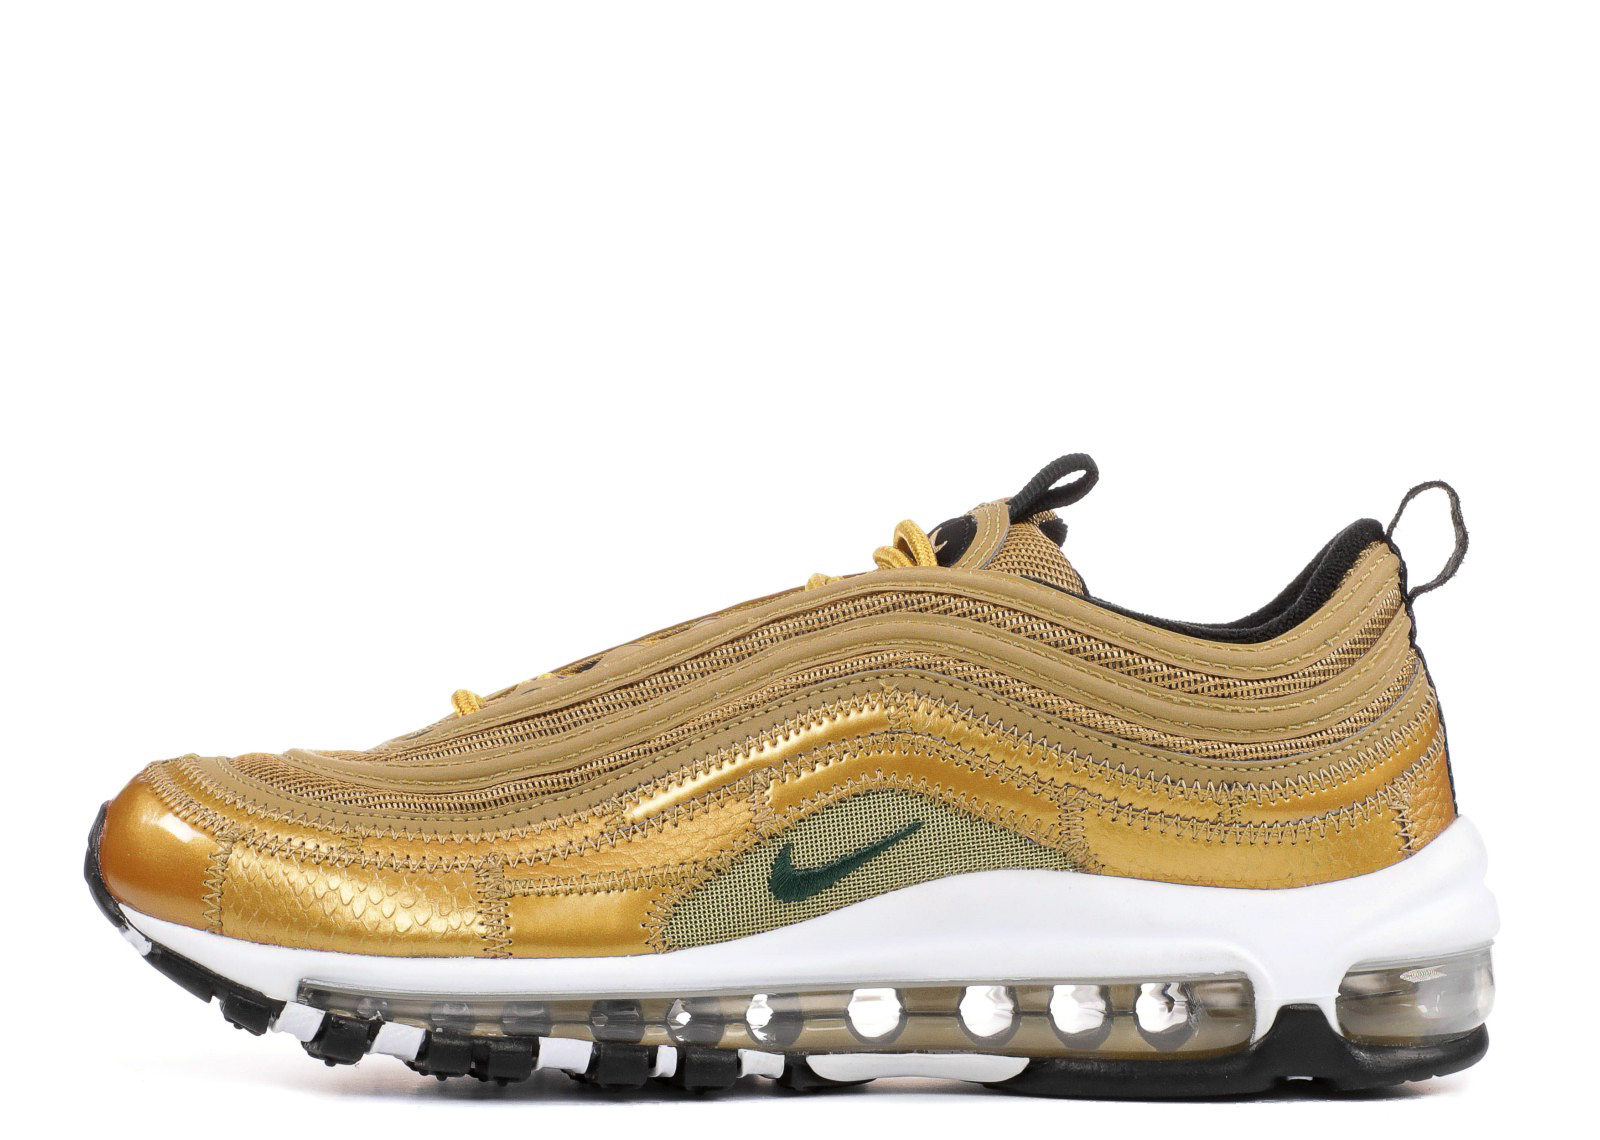 Air Max 97 CR7 'Metallic Gold' AQ0655 700